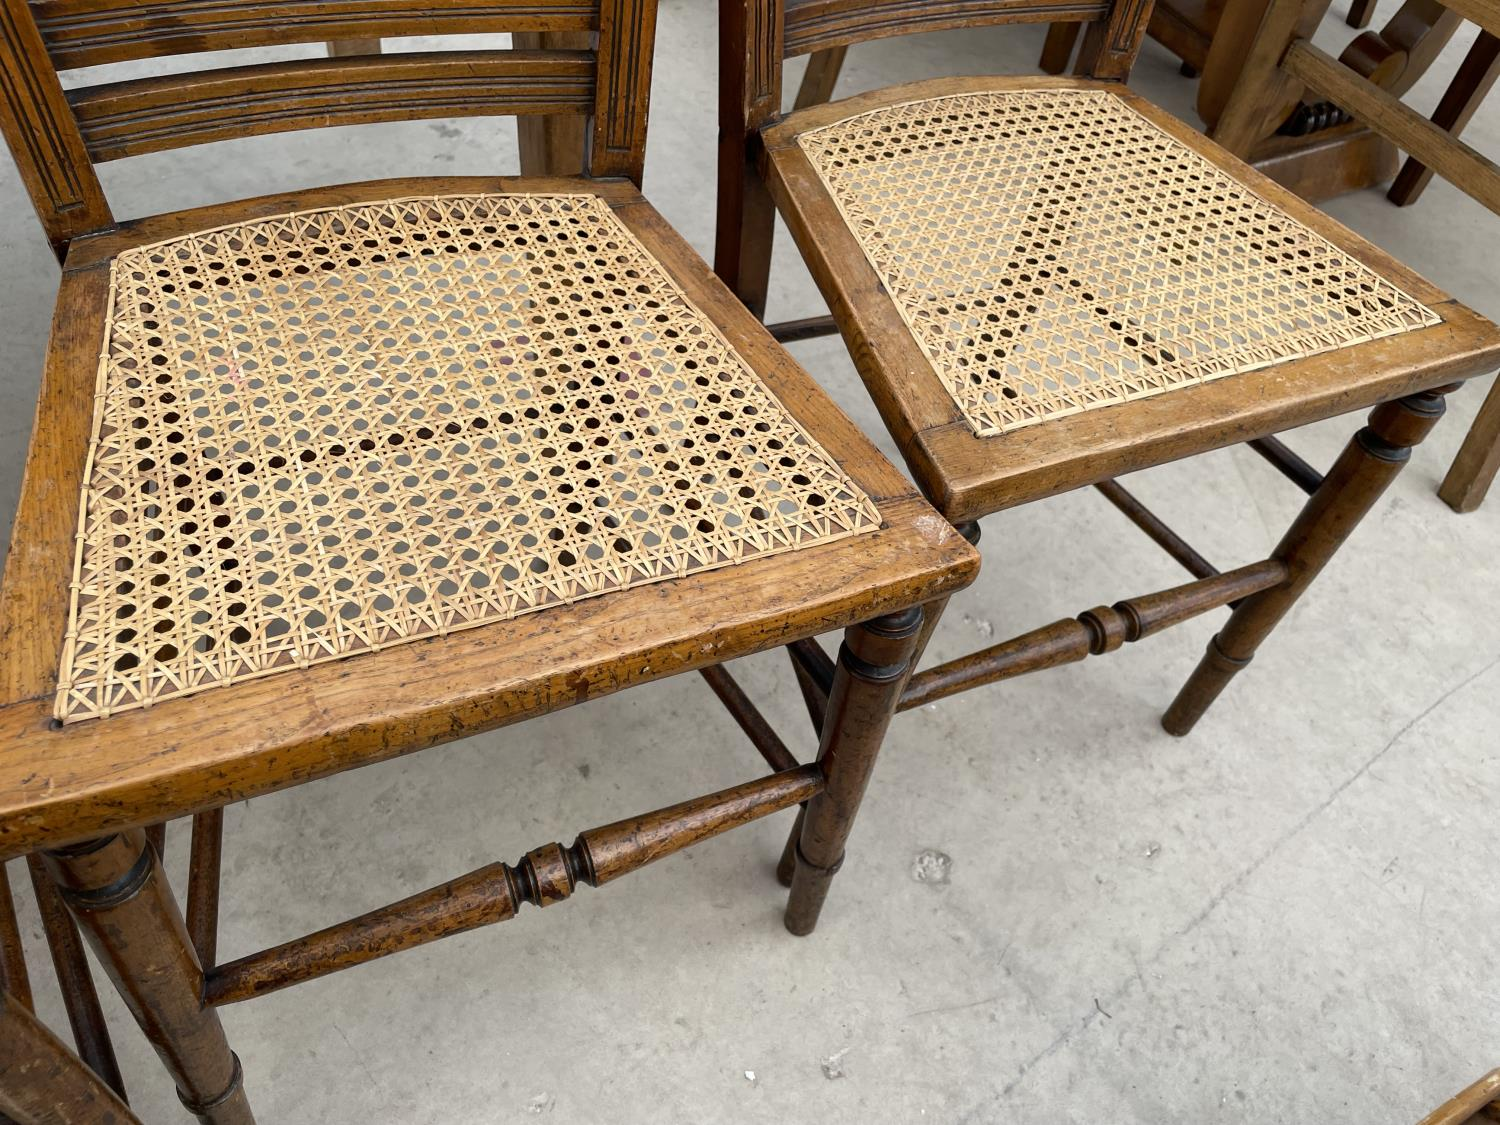 A SET OF FOUR EDWARDIAN BEDROOM CHAIRS WITH CANE SEATS - Image 5 of 5